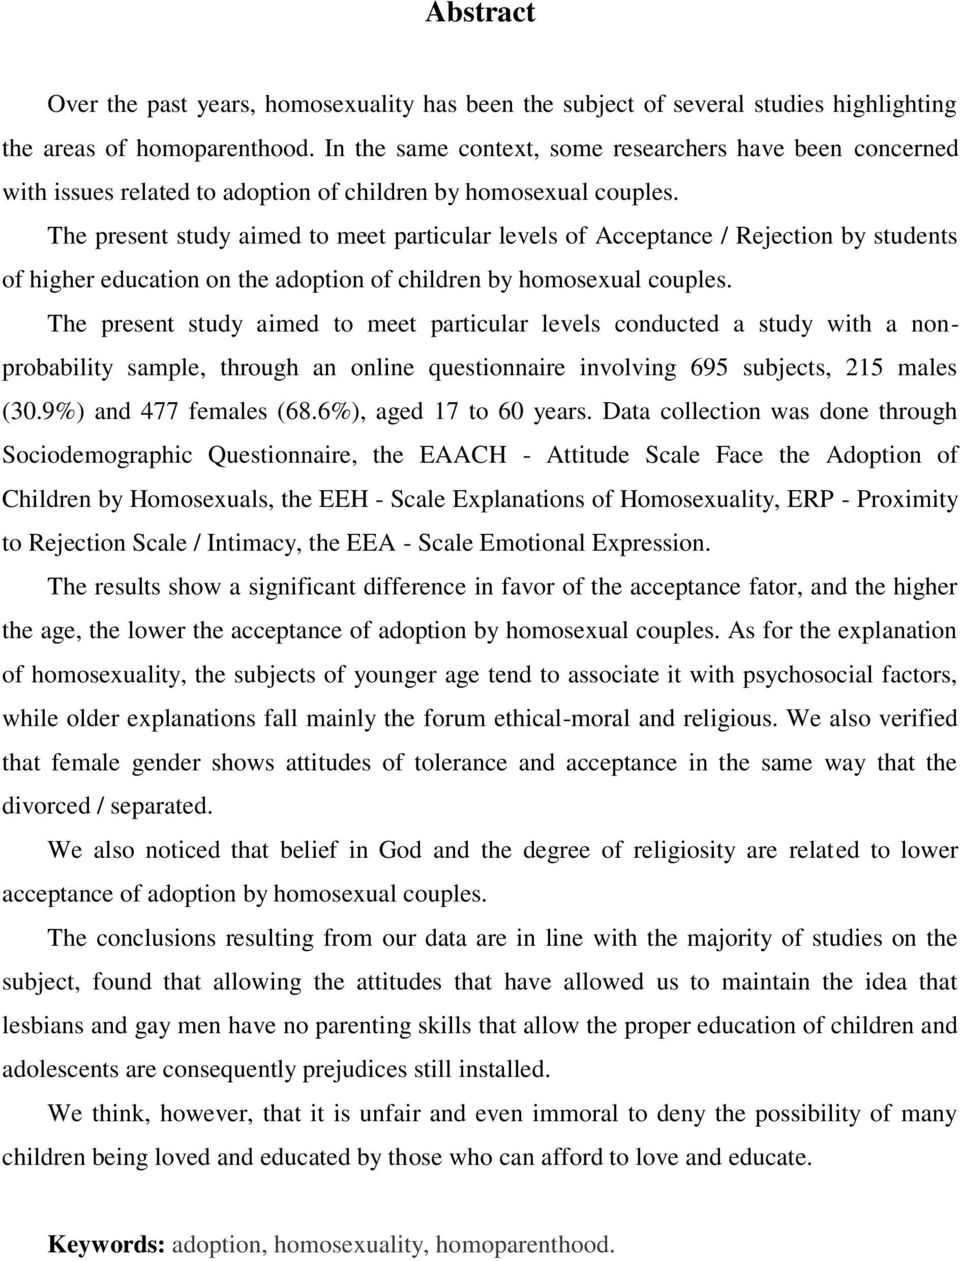 The present study aimed to meet particular levels of Acceptance / Rejection by students of higher education on the adoption of children by homosexual couples.